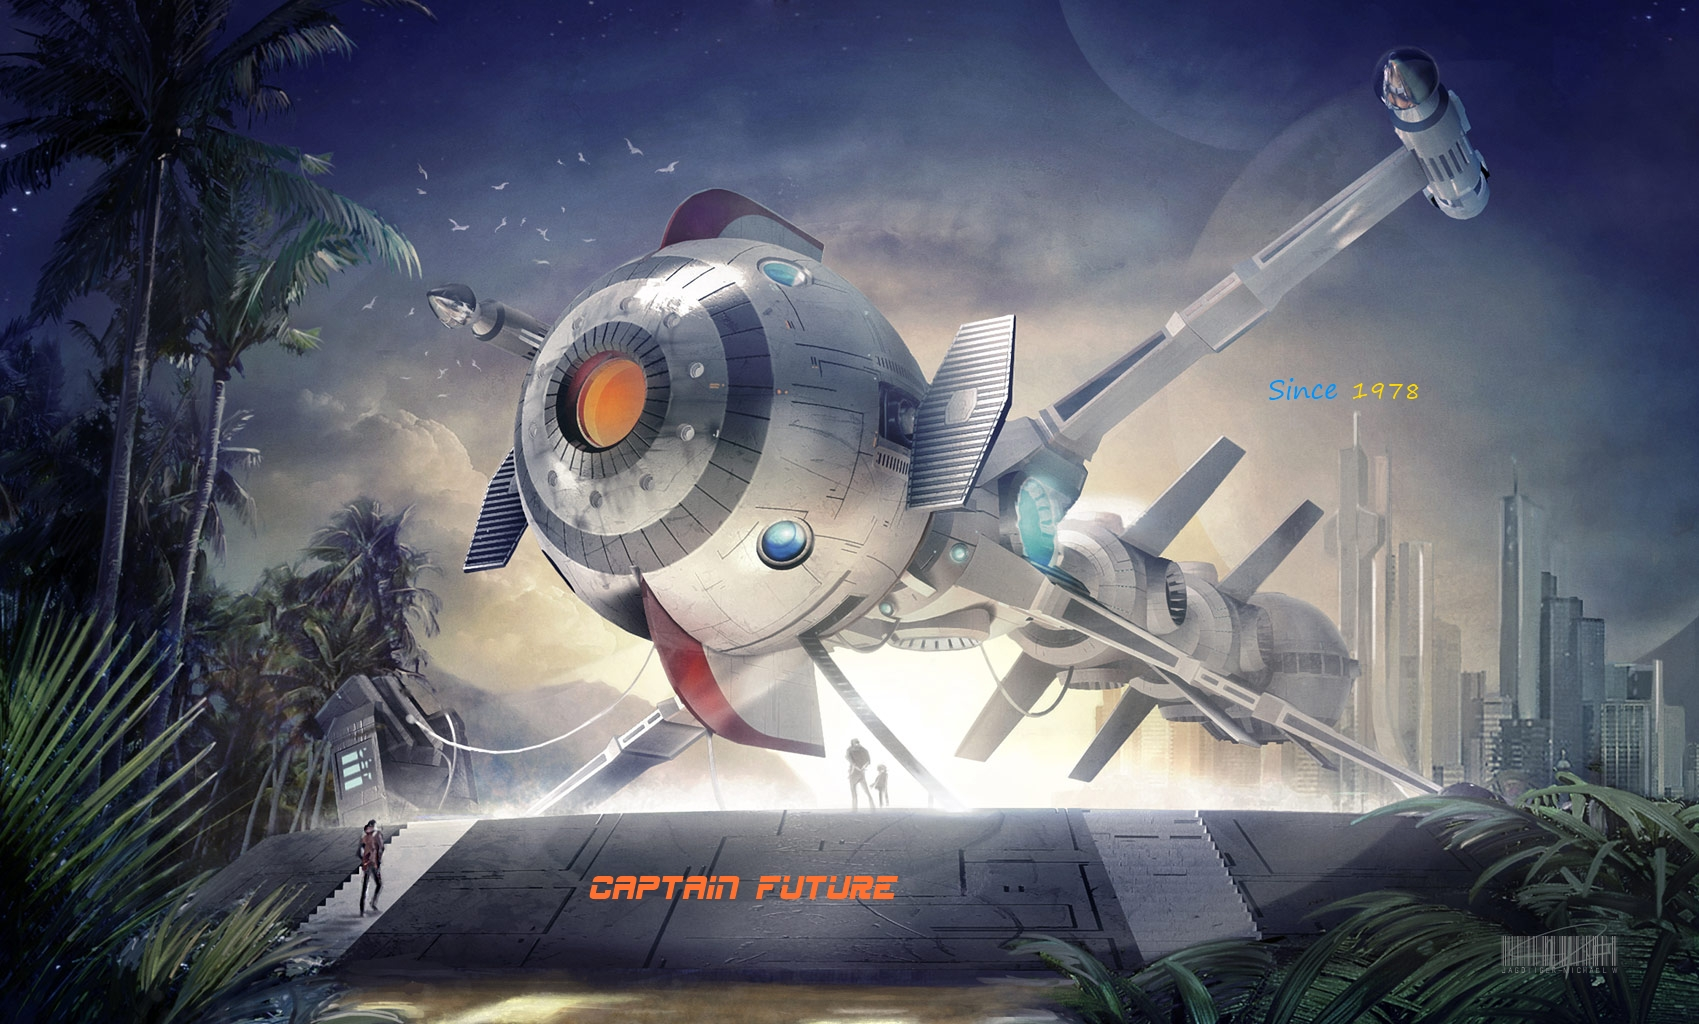 Captain Future by JagdTigerGER